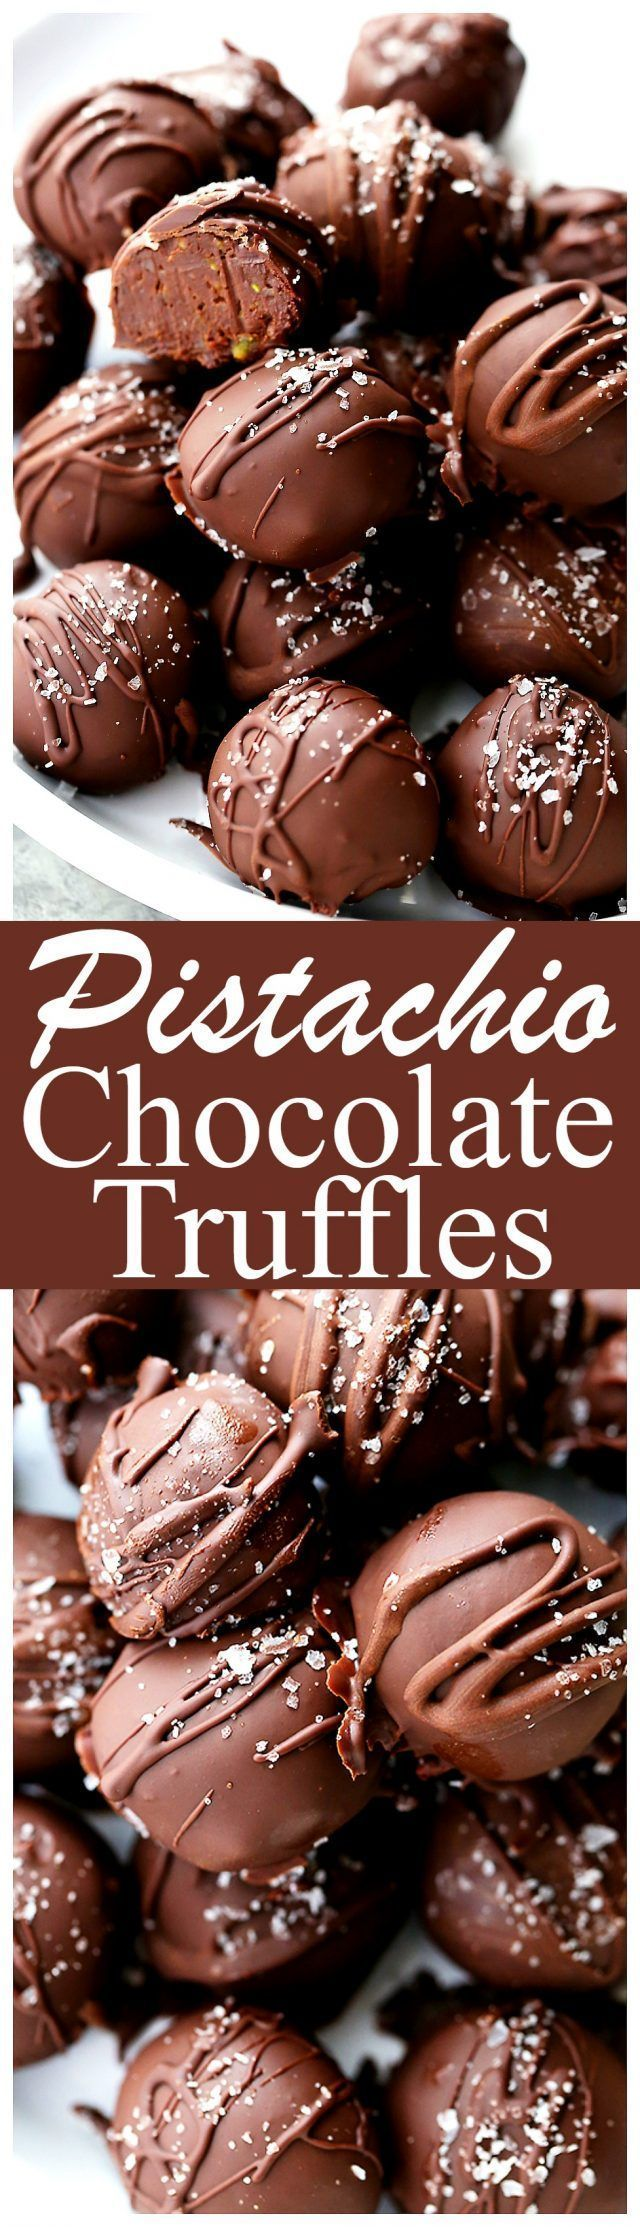 Salted Pistachio Dark Chocolate Truffles - Decadent chocolate truffles made with…